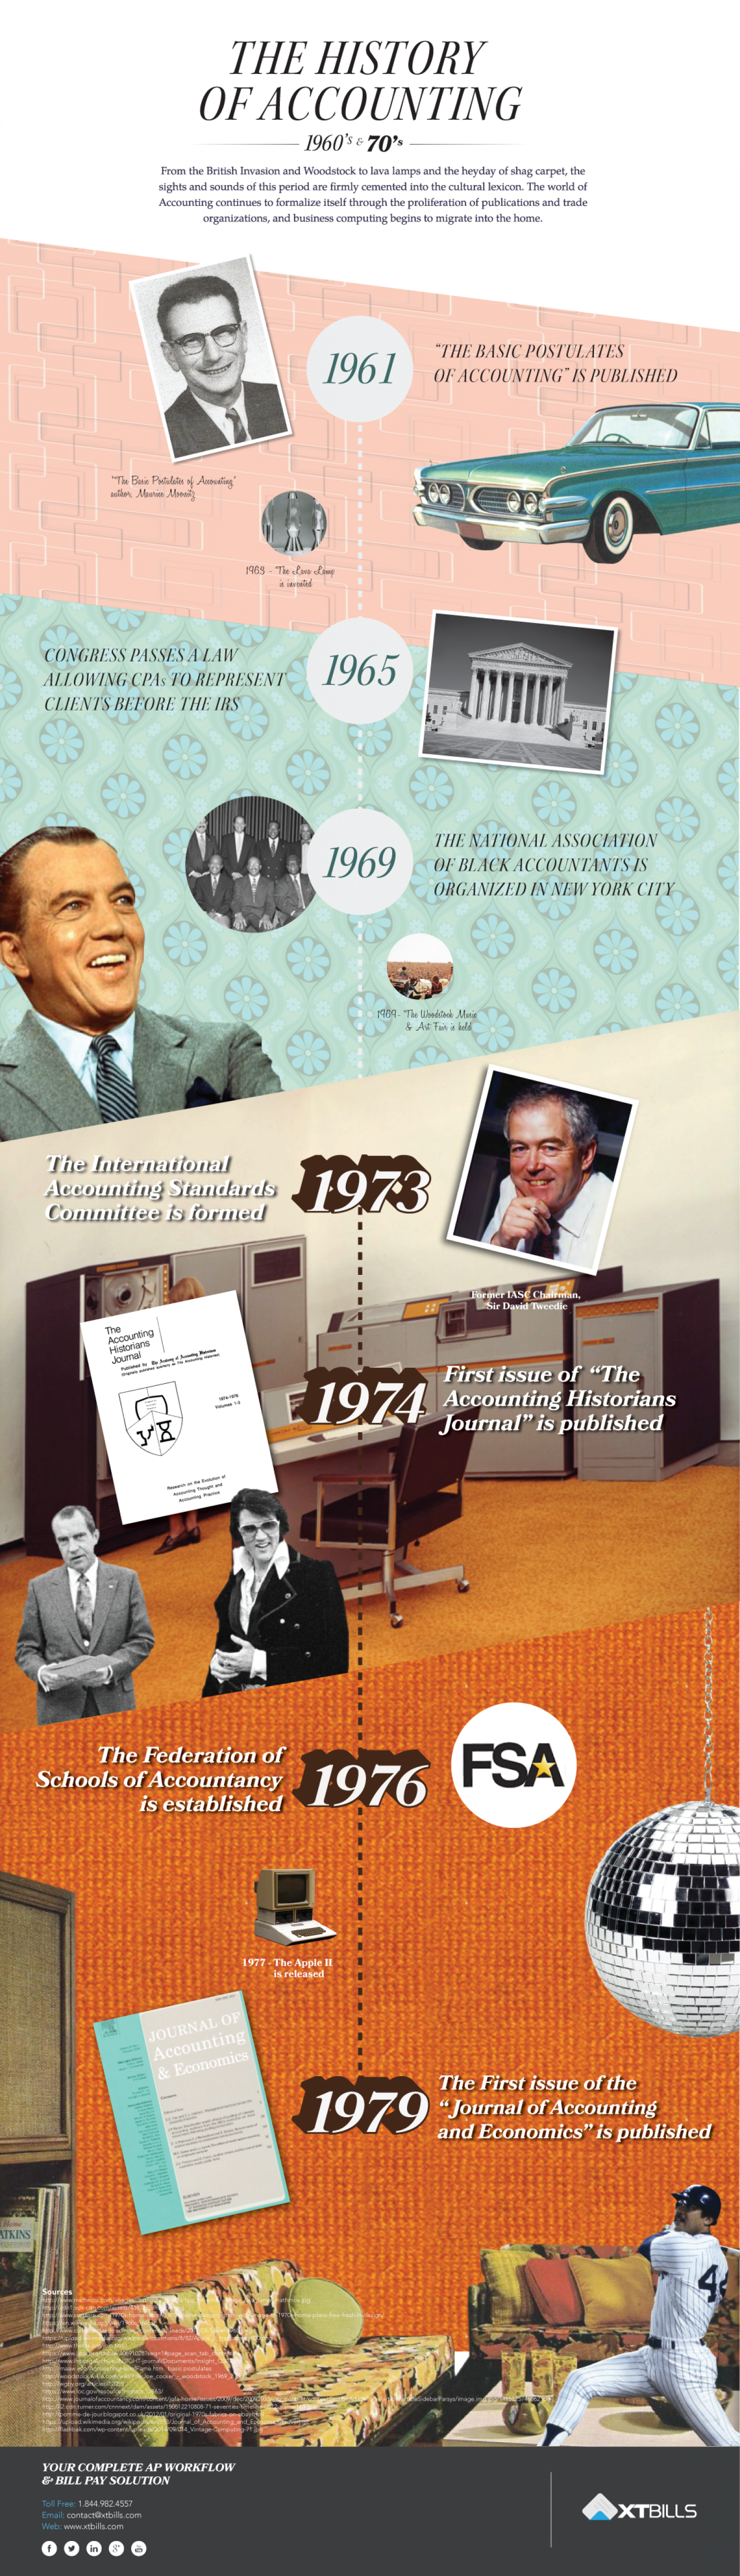 History of Accounting Part 6: 1960-1980 Infographic